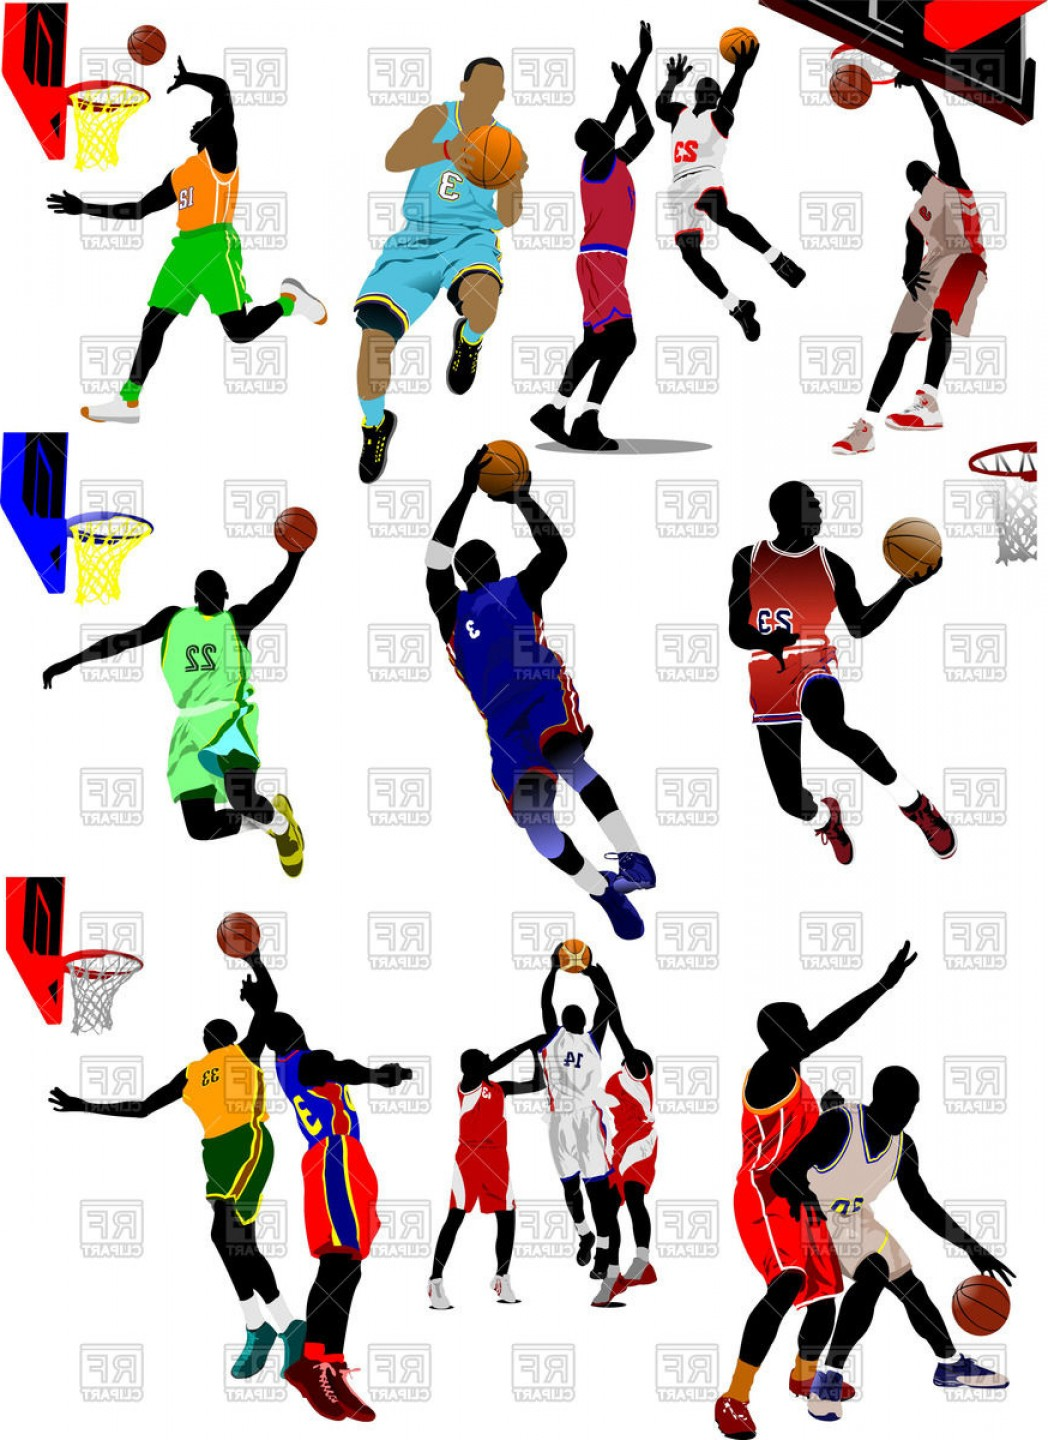 Colored Silhouette Of Basketball Players In Motion Vector Clipart.